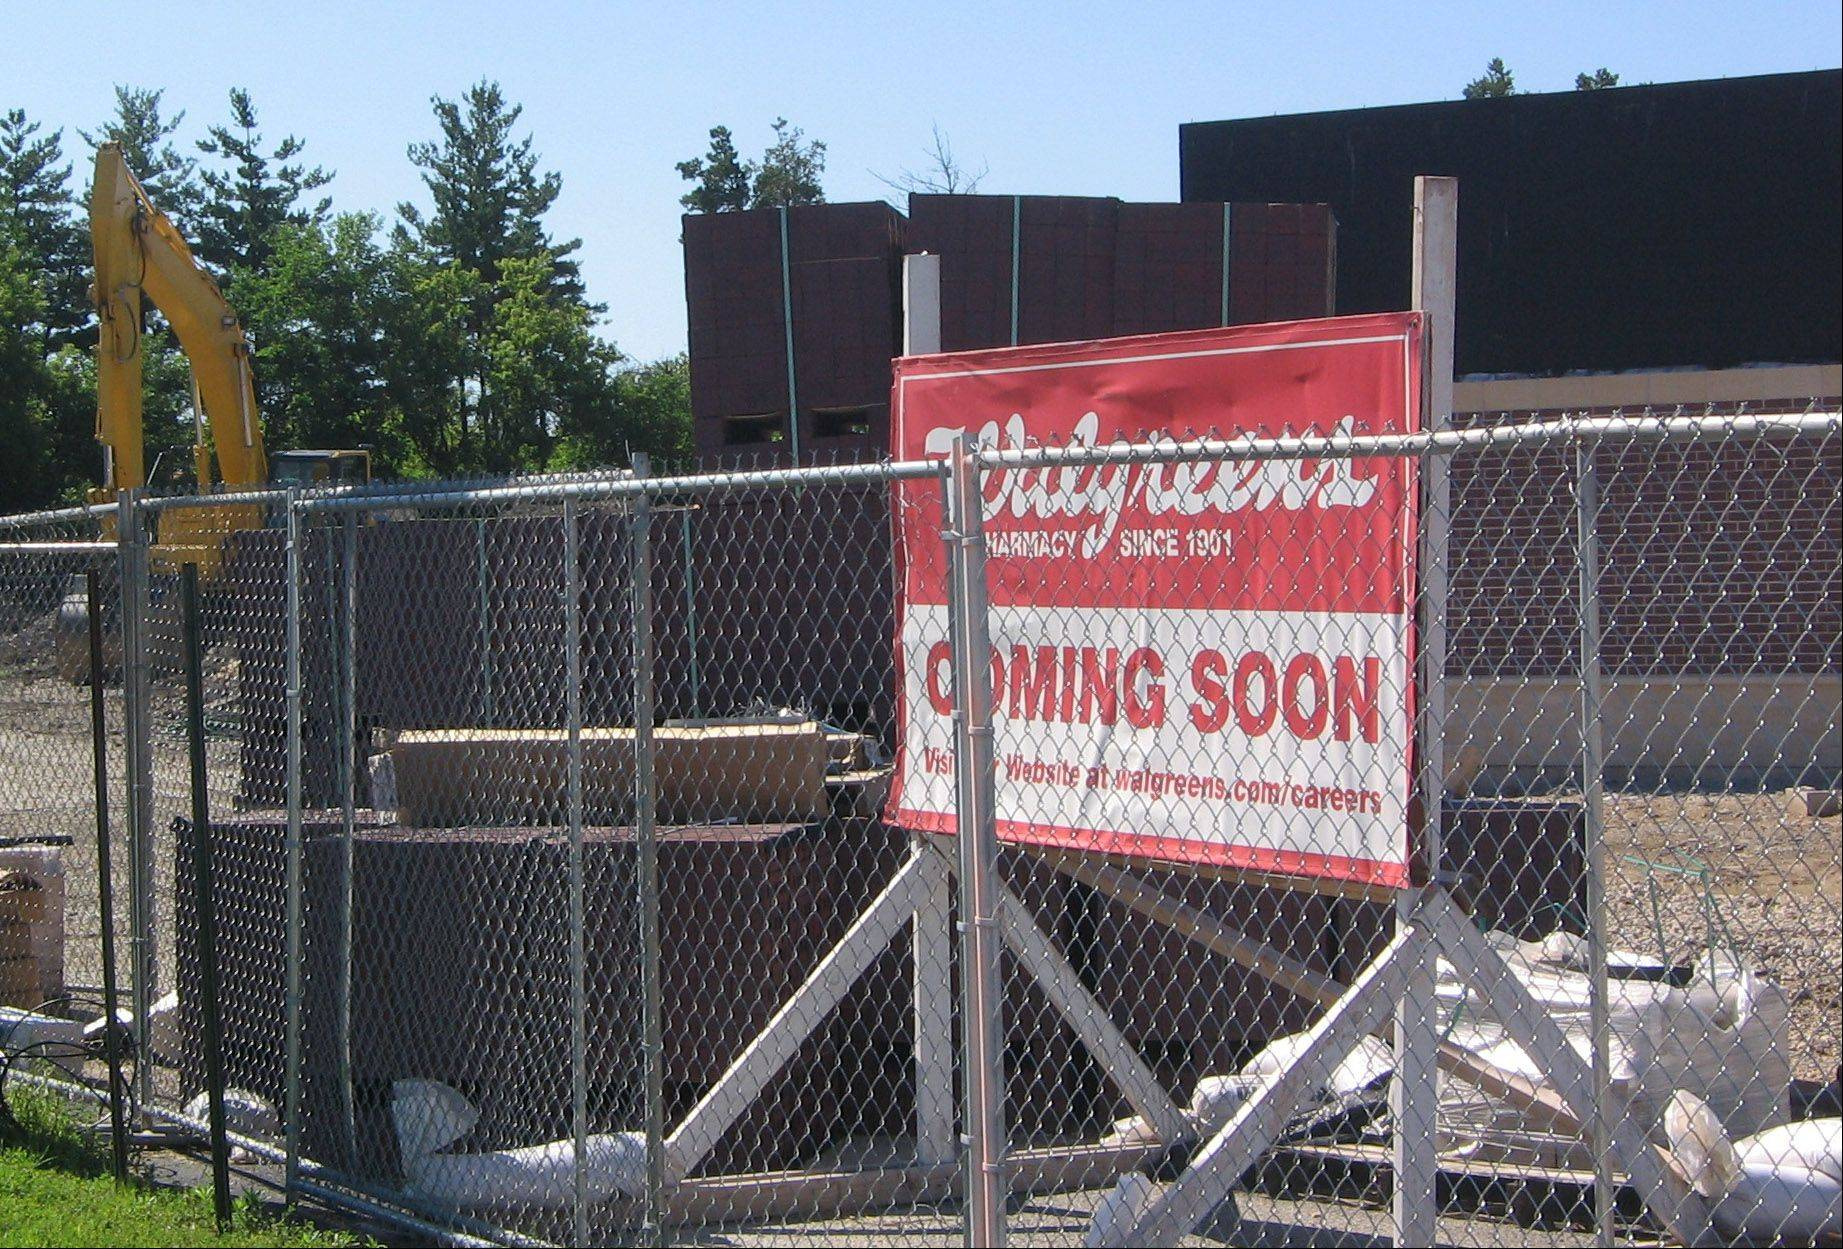 Construction of a Walgreens is a sign of growth in Lakemoor, officials say.